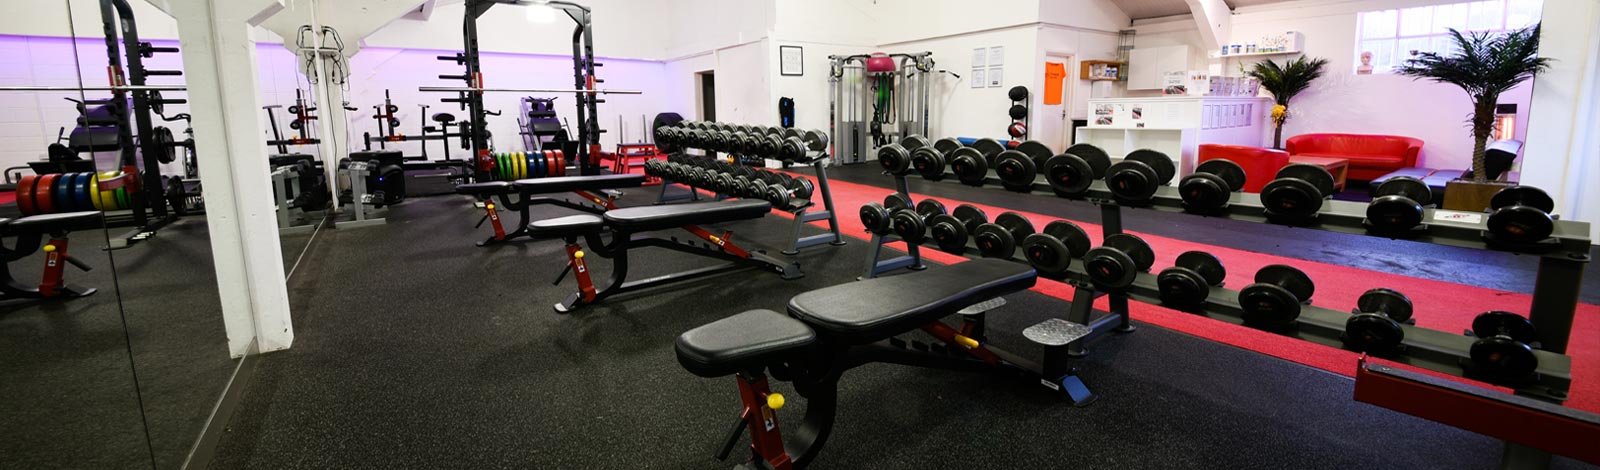 Weights and benches in gym